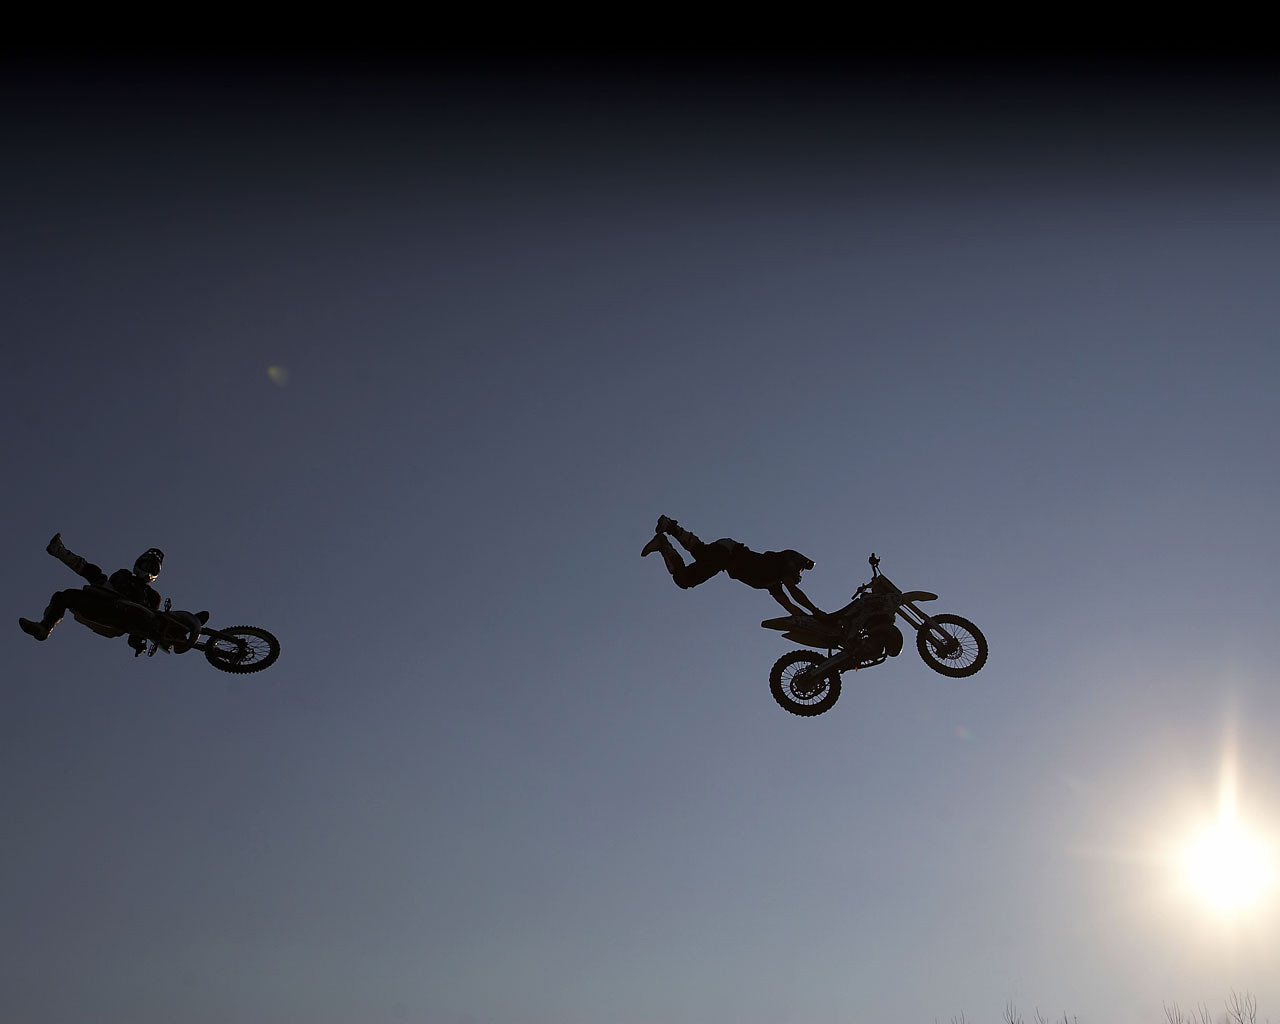 Trick for Two - piambro - Motocross Pictures - Vital MX